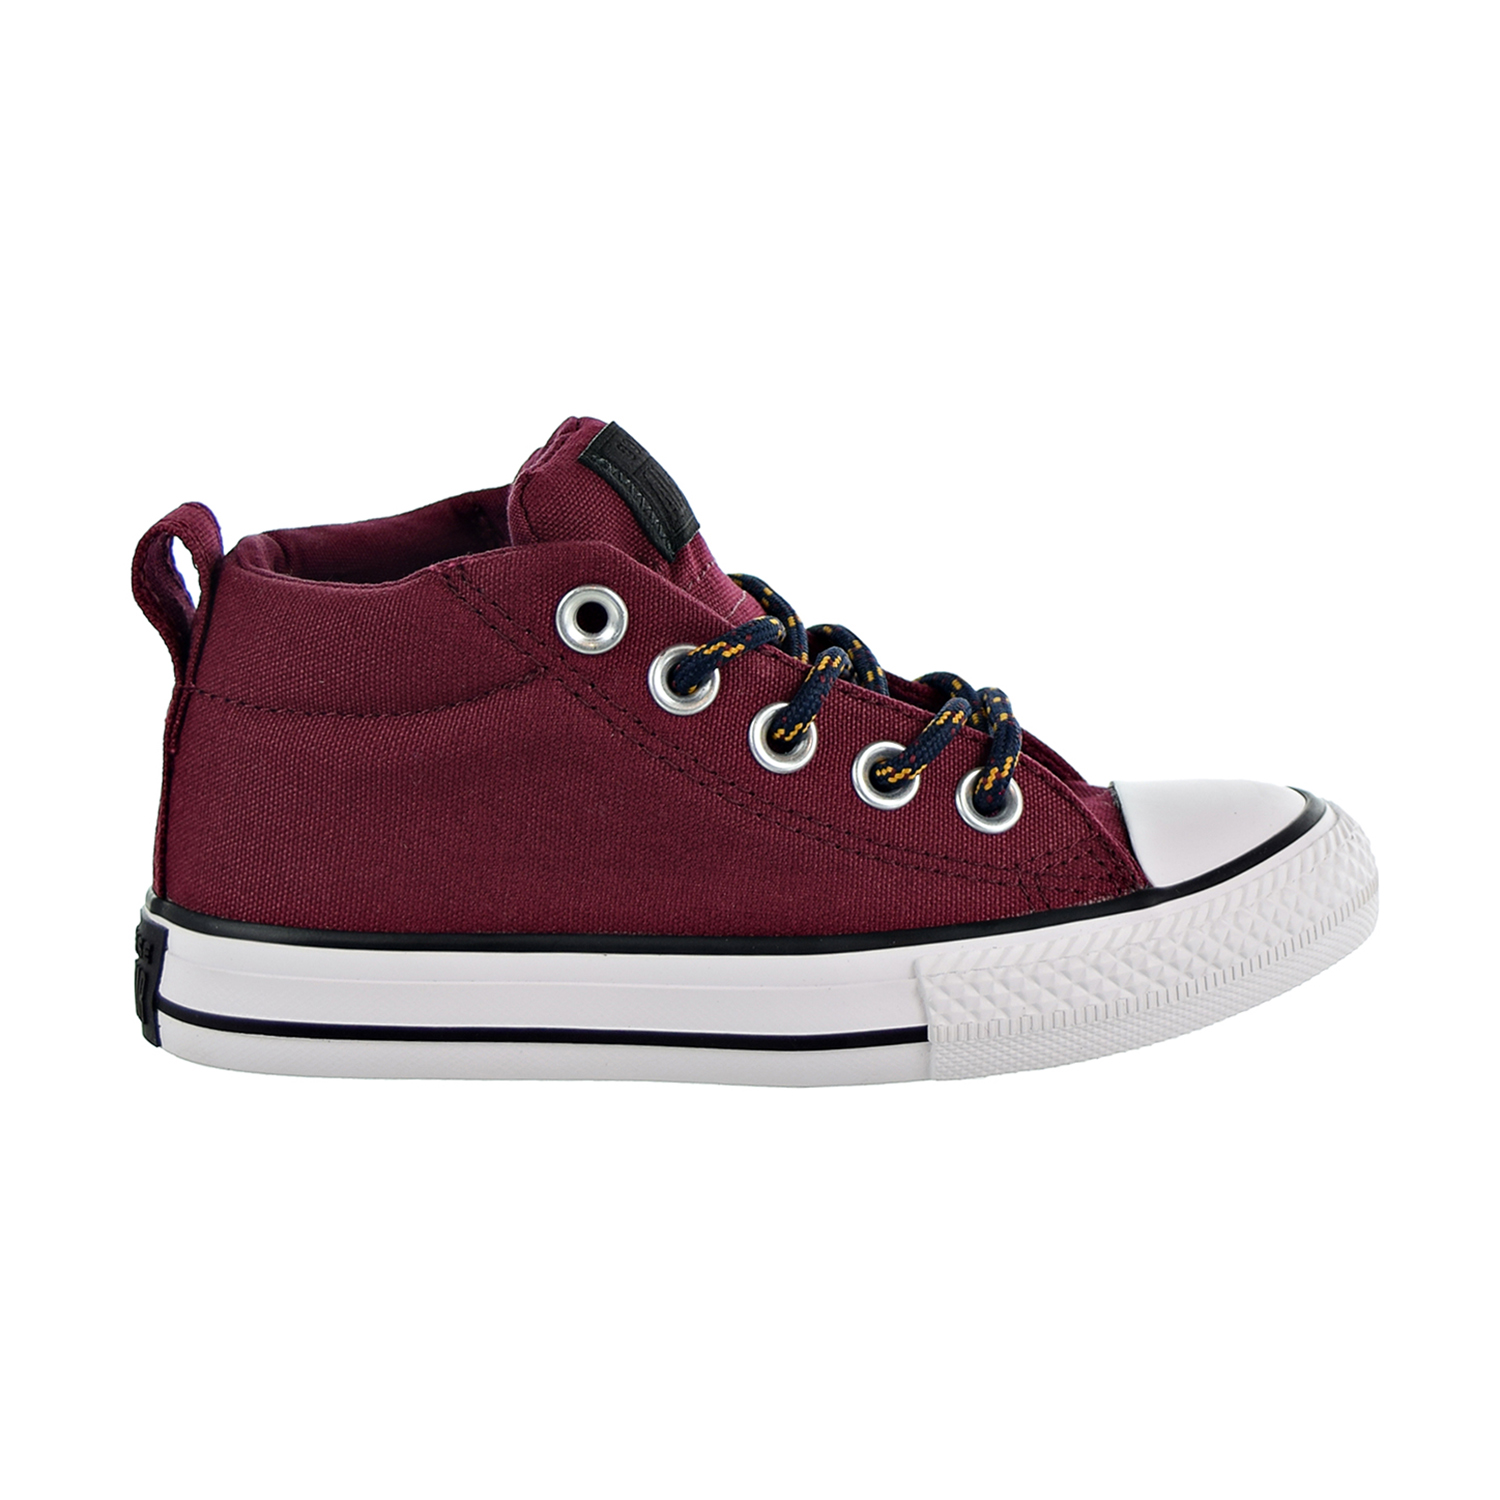 00c81e0bfb23 Details about Converse Chuck Taylor All Star Street Mid Big Kids  Shoes Dark  Burgundy 662339F